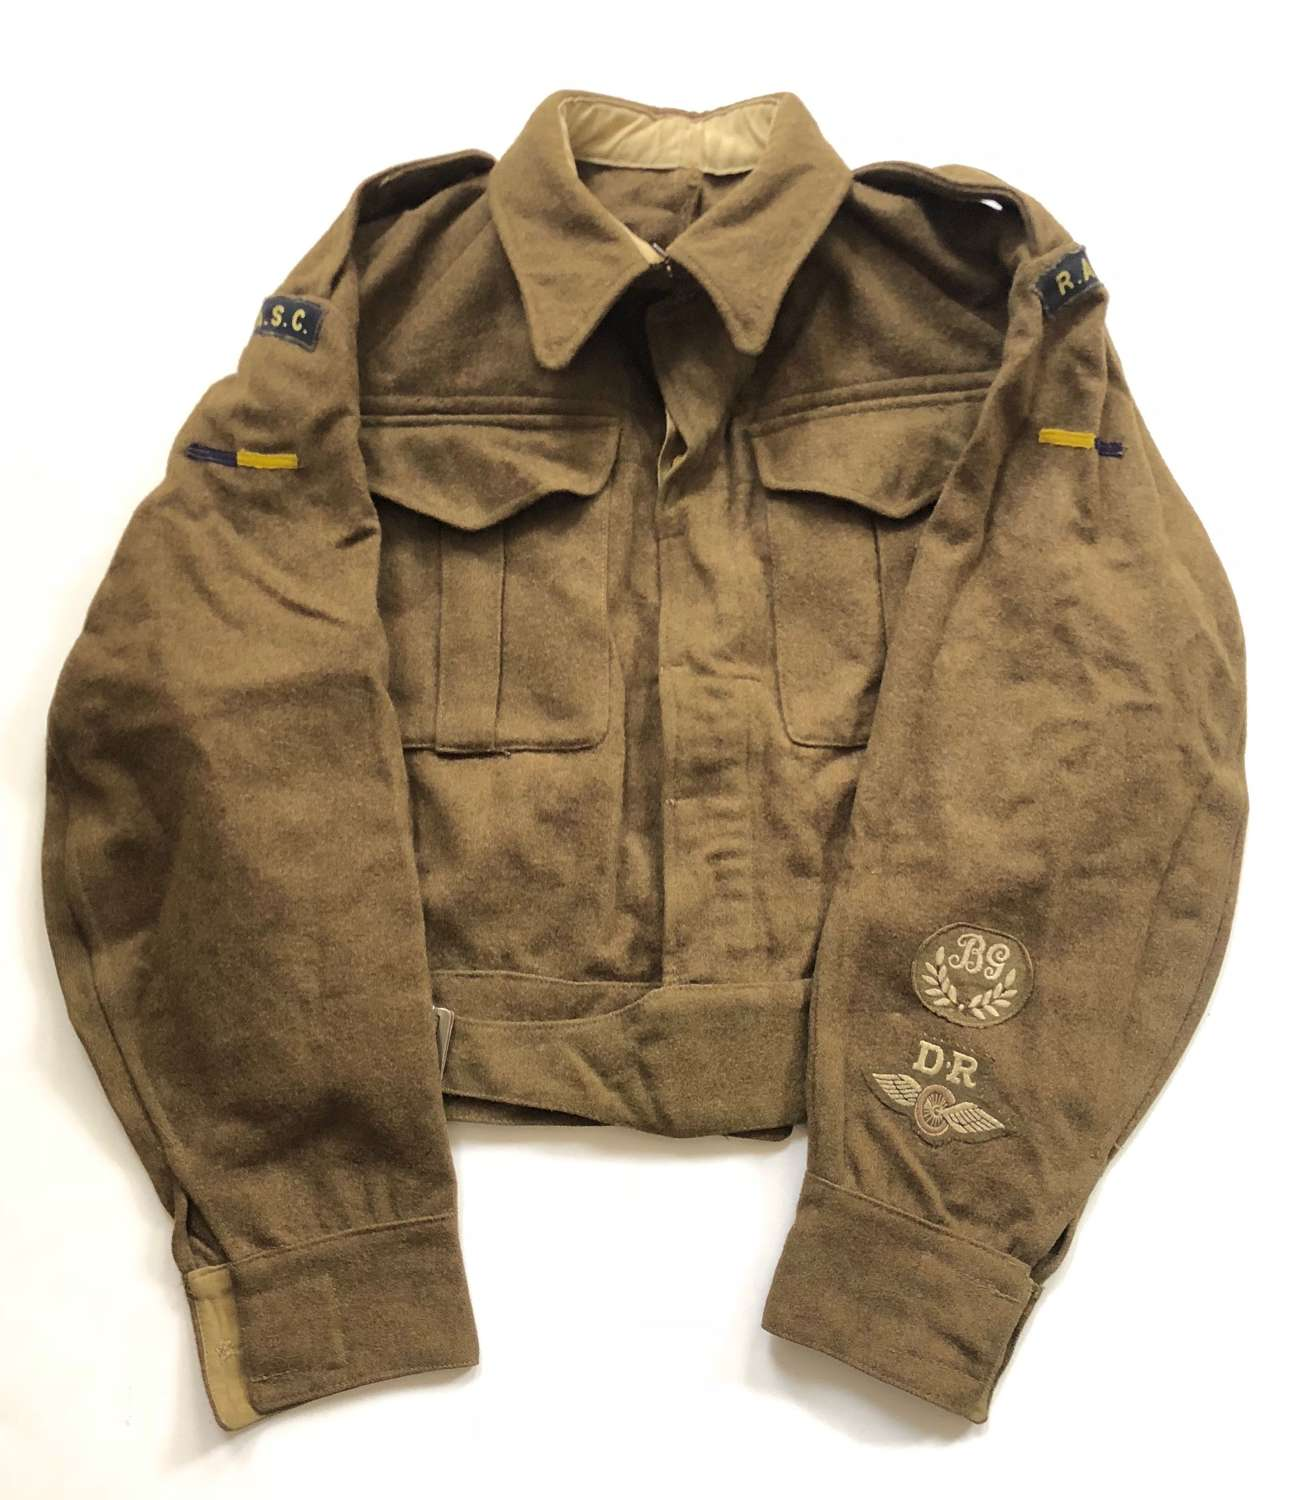 WW2 Royal Army Service Corps Battledress Blouse.